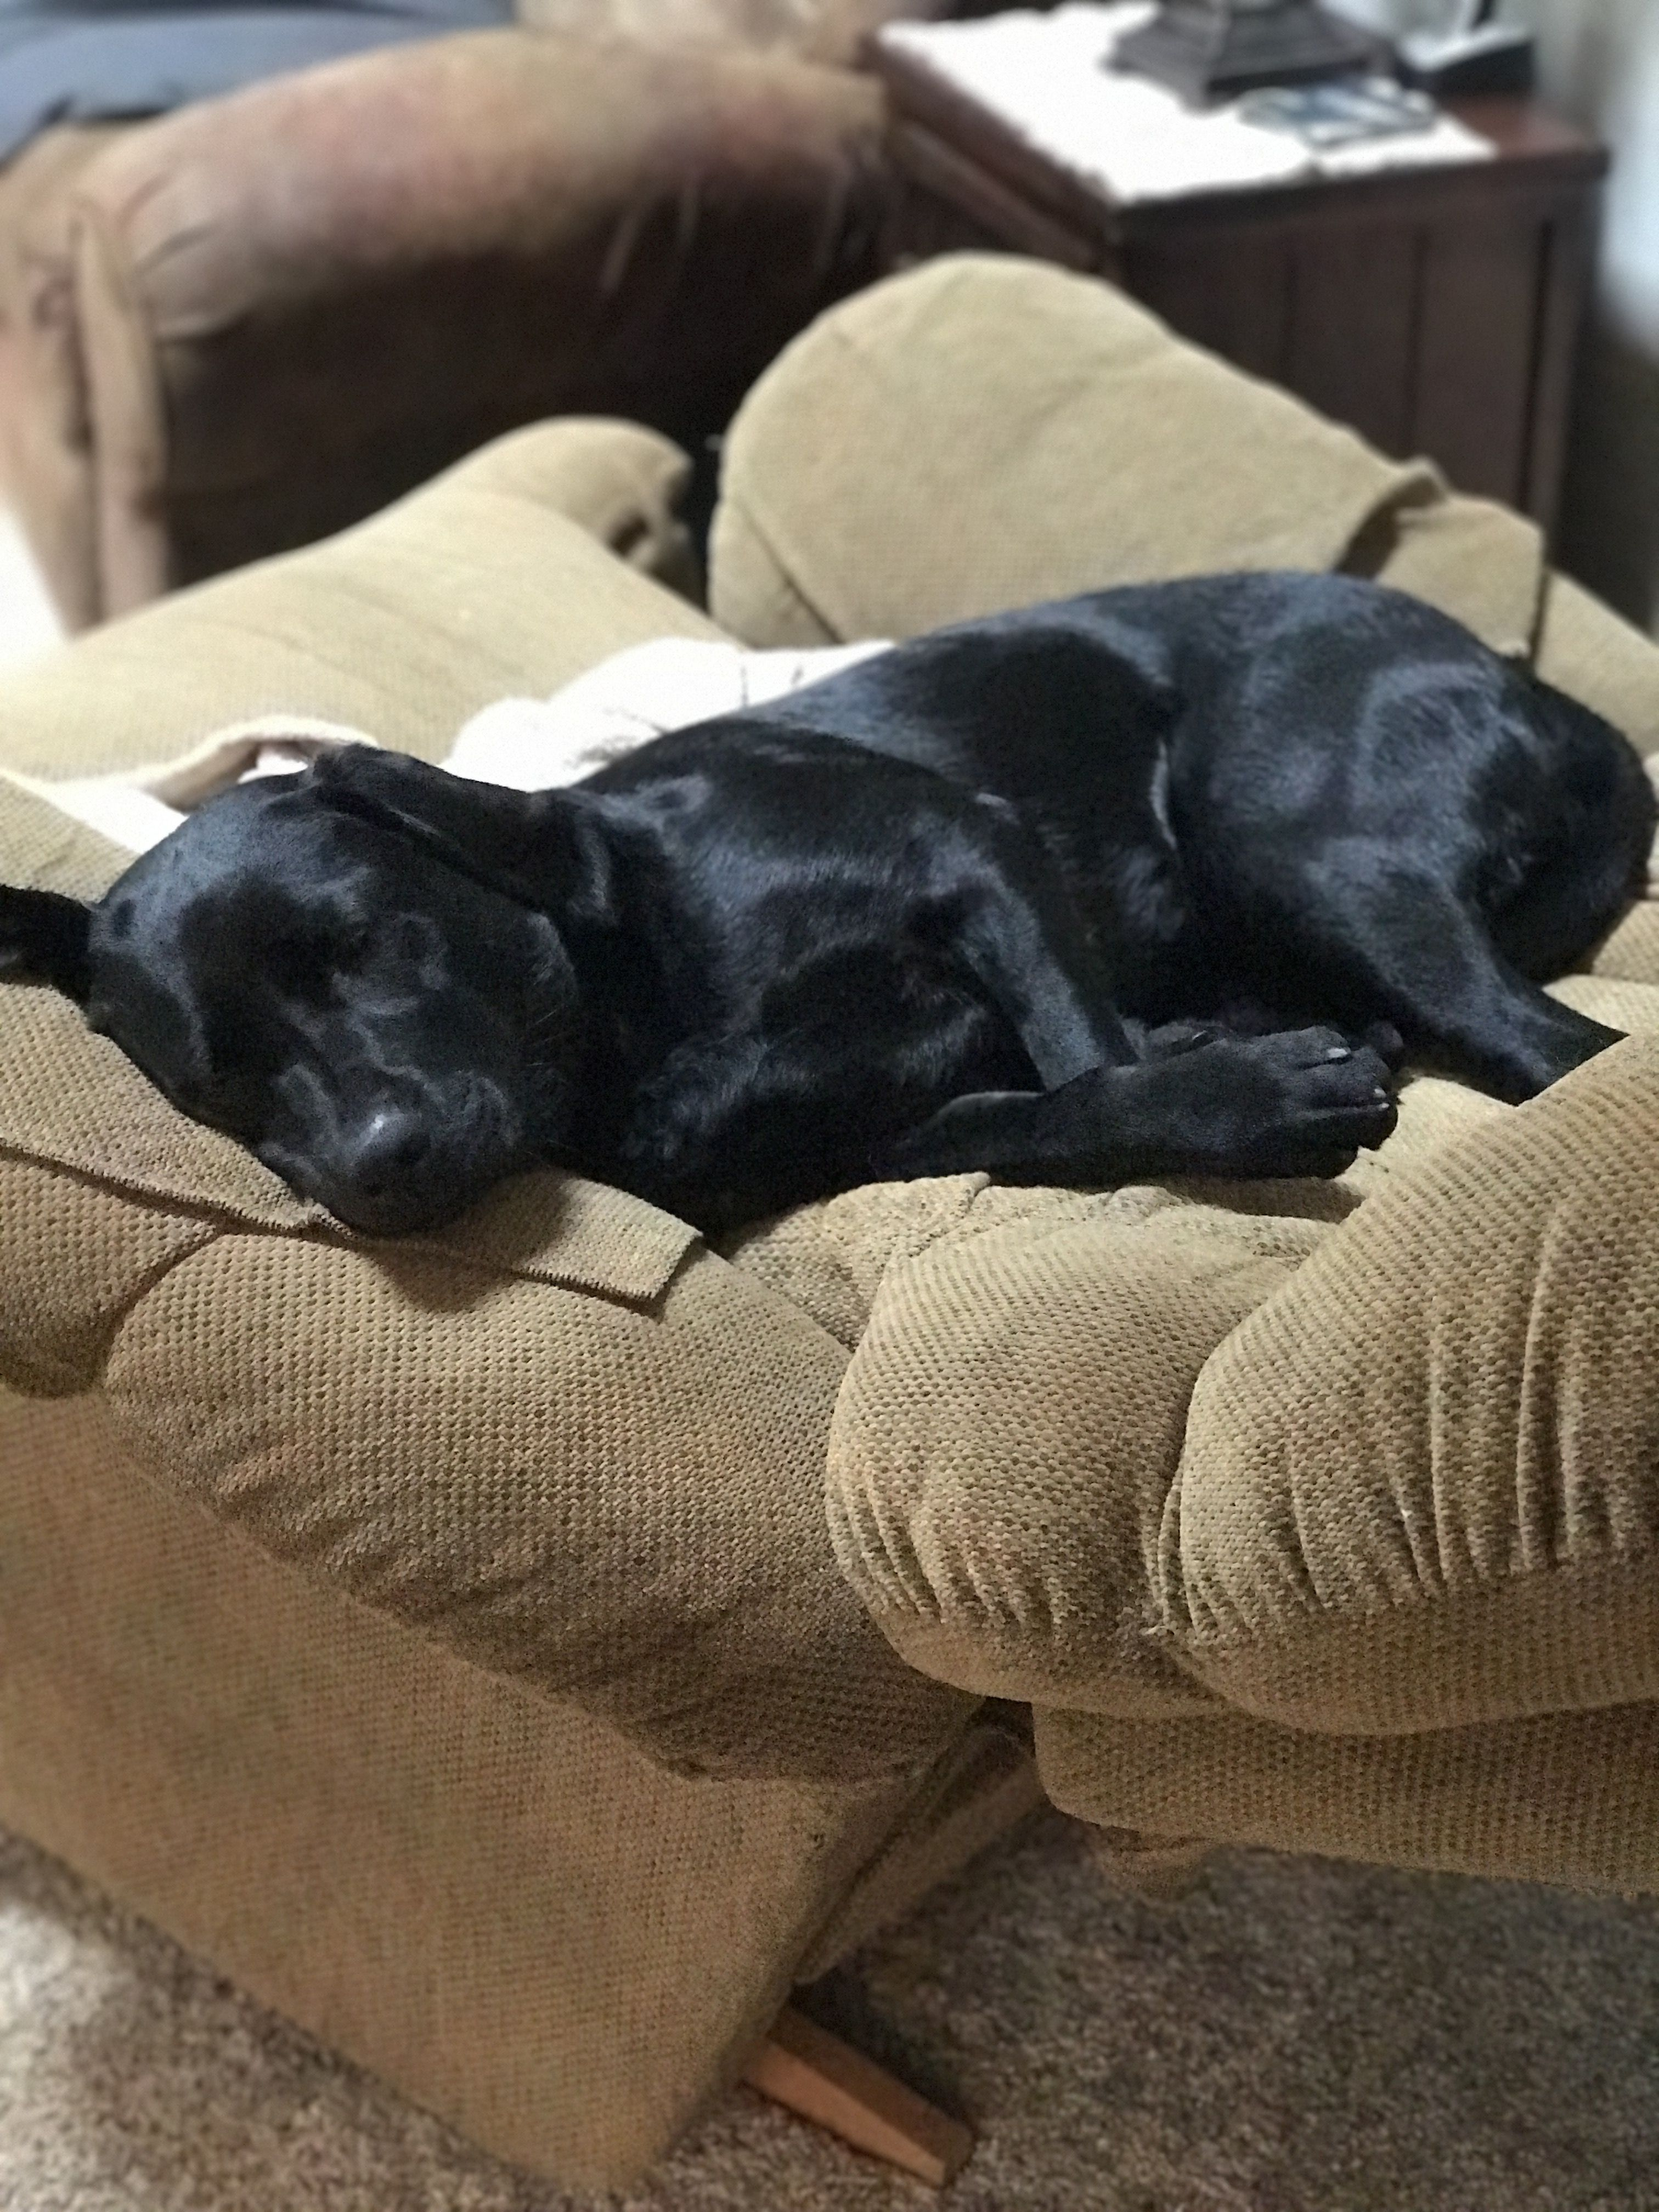 One year old Black English Lab. Favorite place to sleep